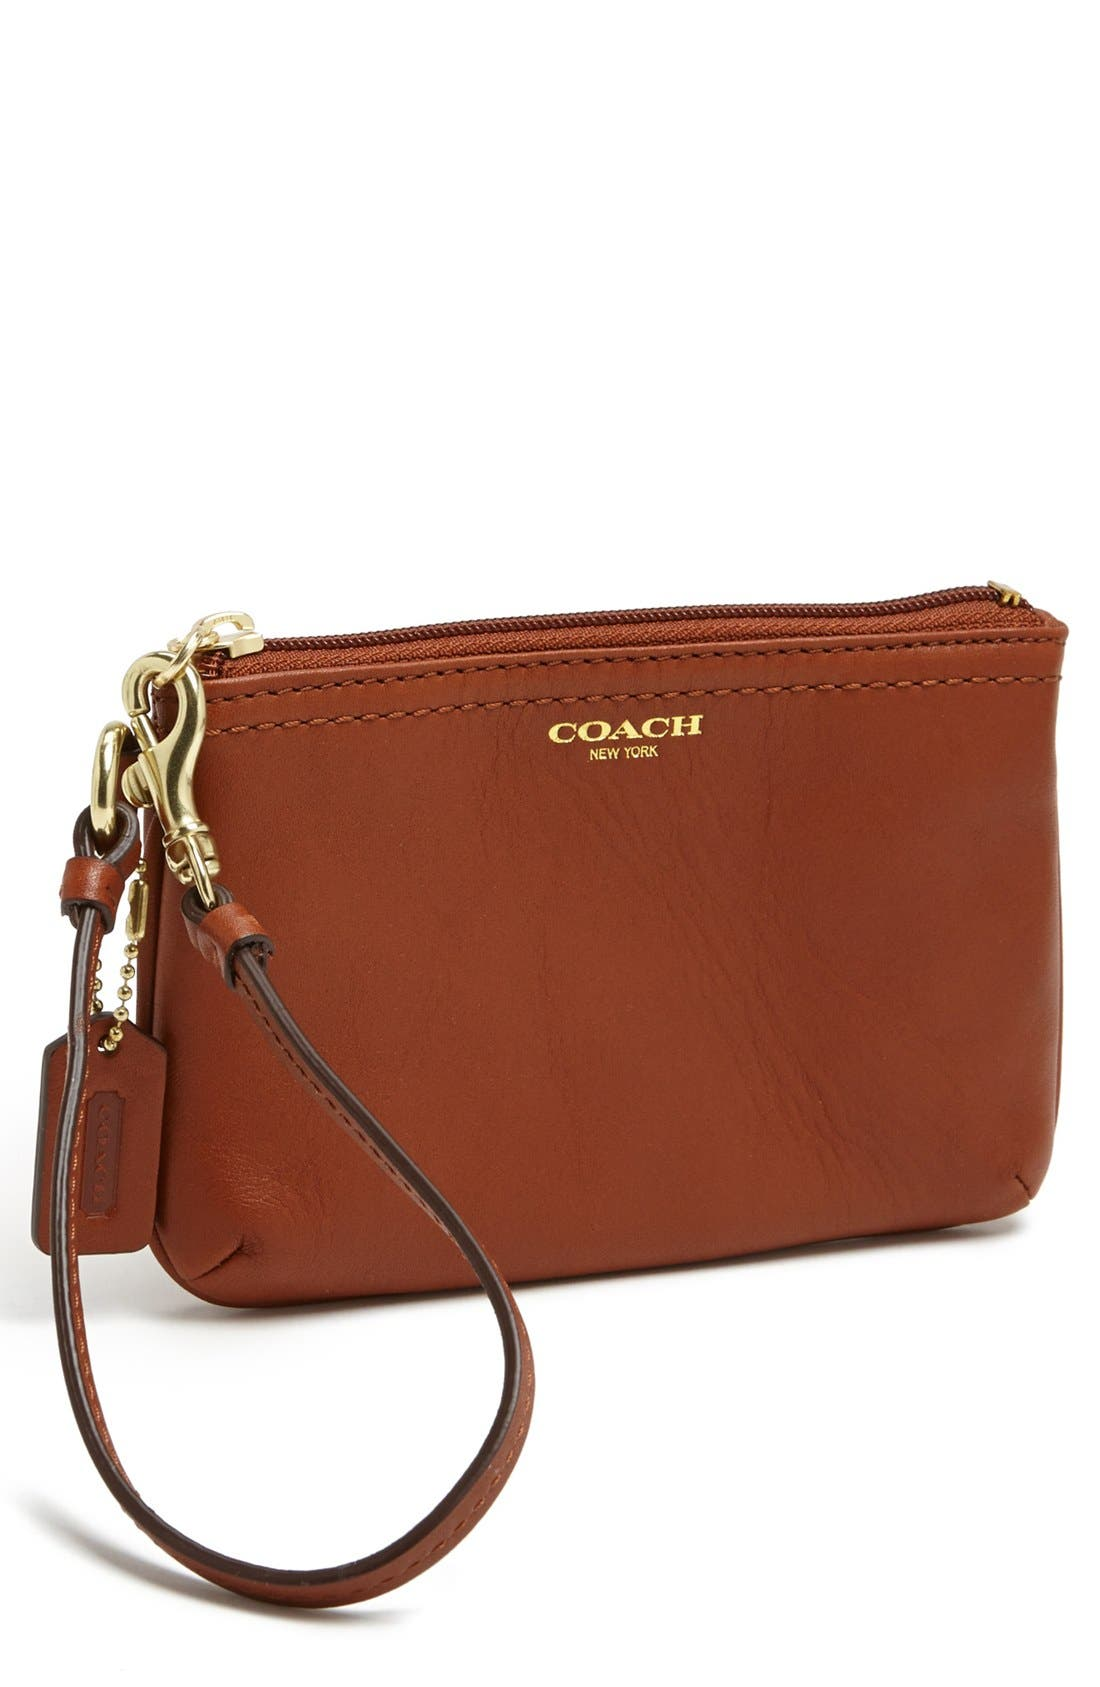 Alternate Image 1 Selected - COACH 'Small' Leather Wristlet